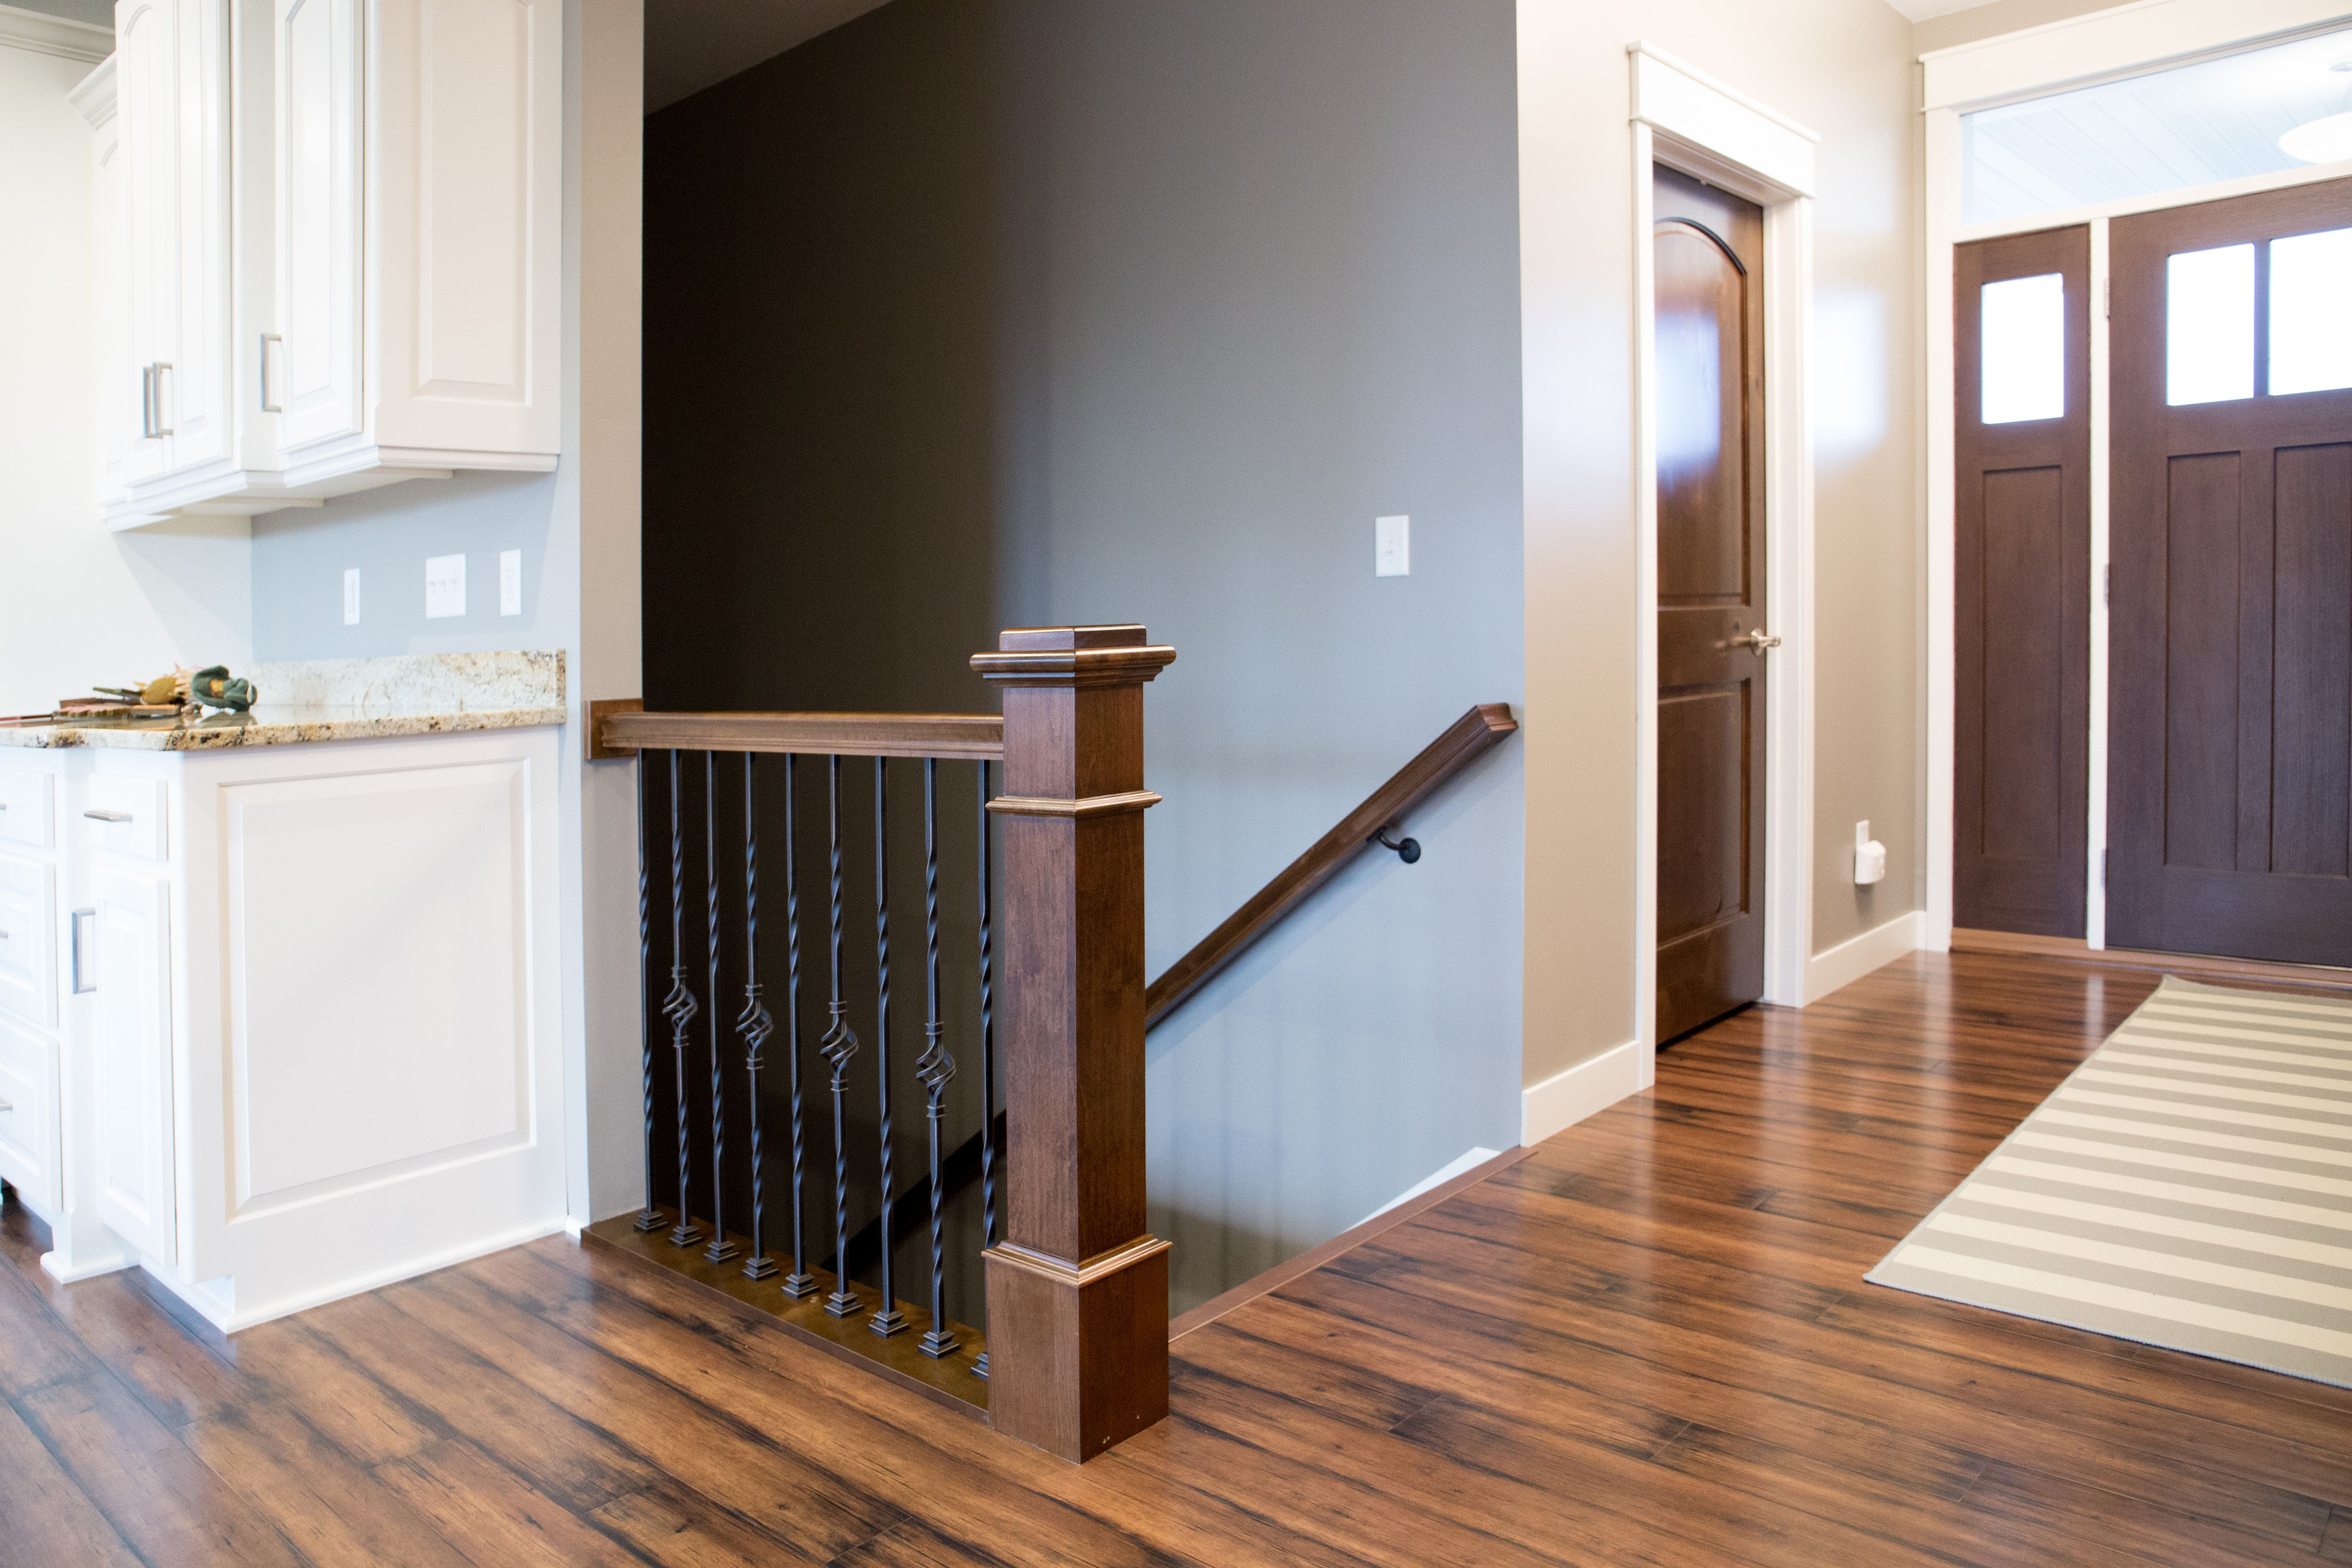 Stair Systems | A Prefinished Newel Post And Handrail Match The Exterior  And Interior Doors,